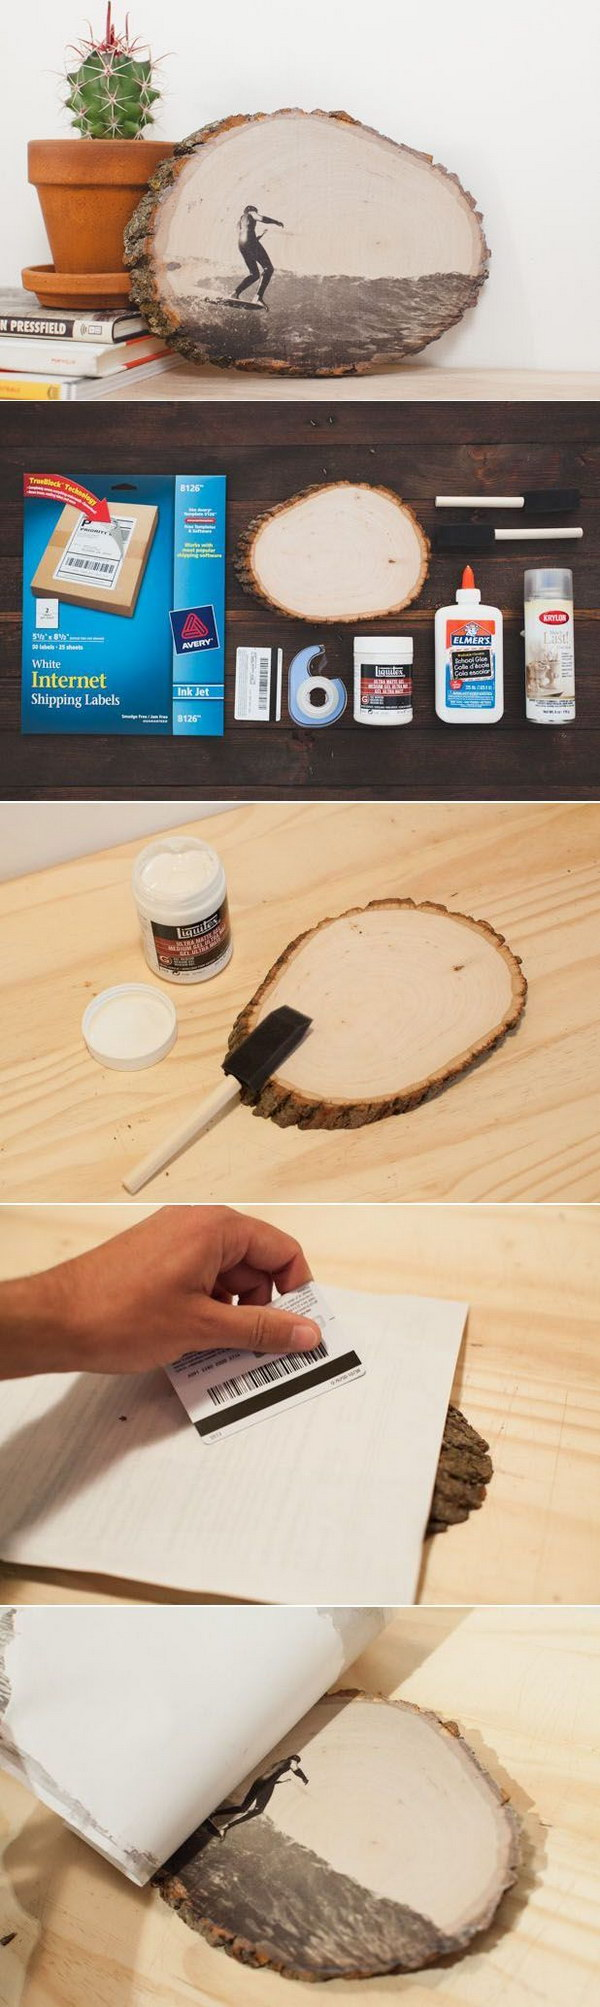 20 diy photo gift ideas tutorials styletic for Transfer picture to wood inkjet